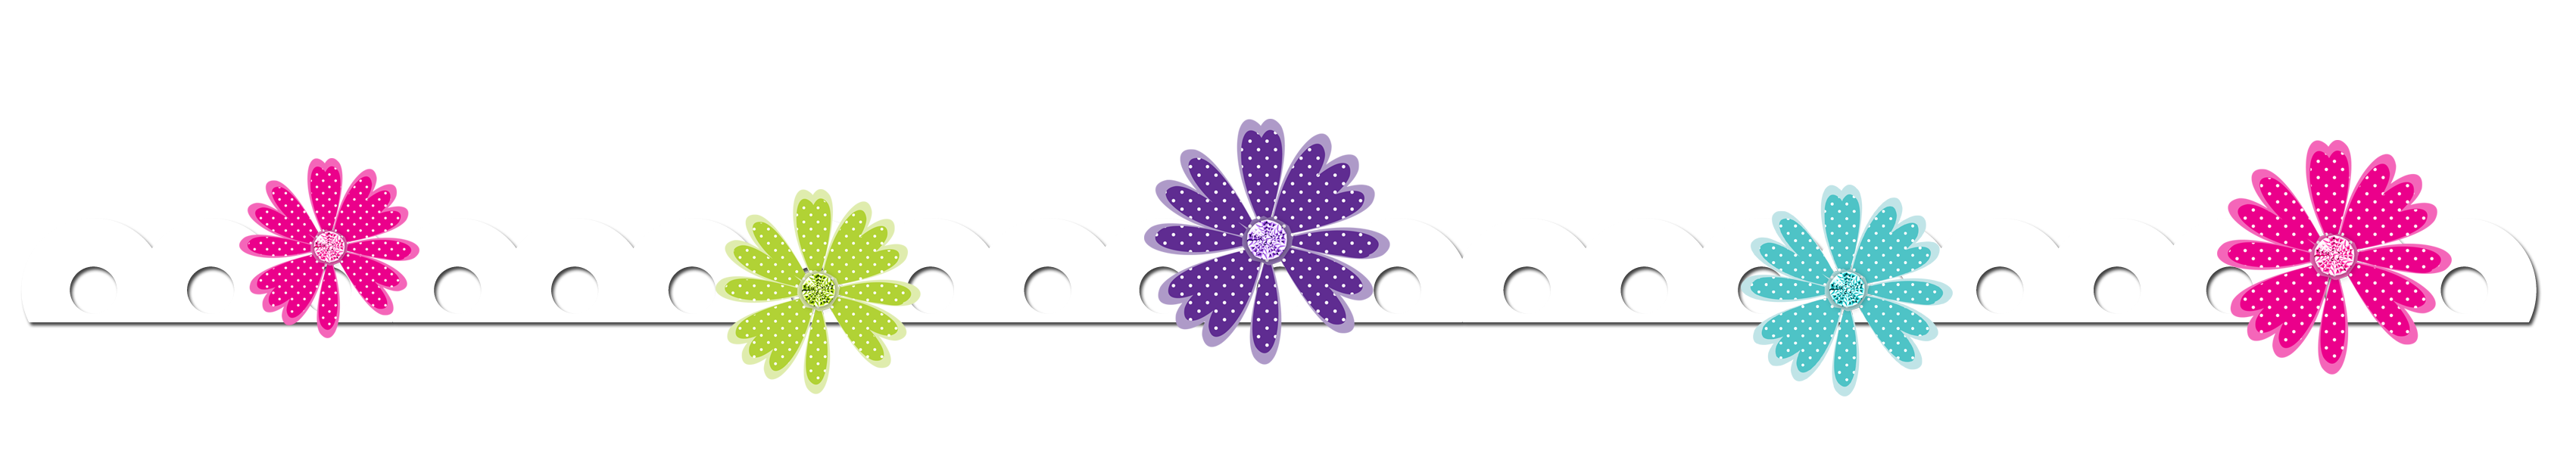 Daisy clipart banner. Clip art all things